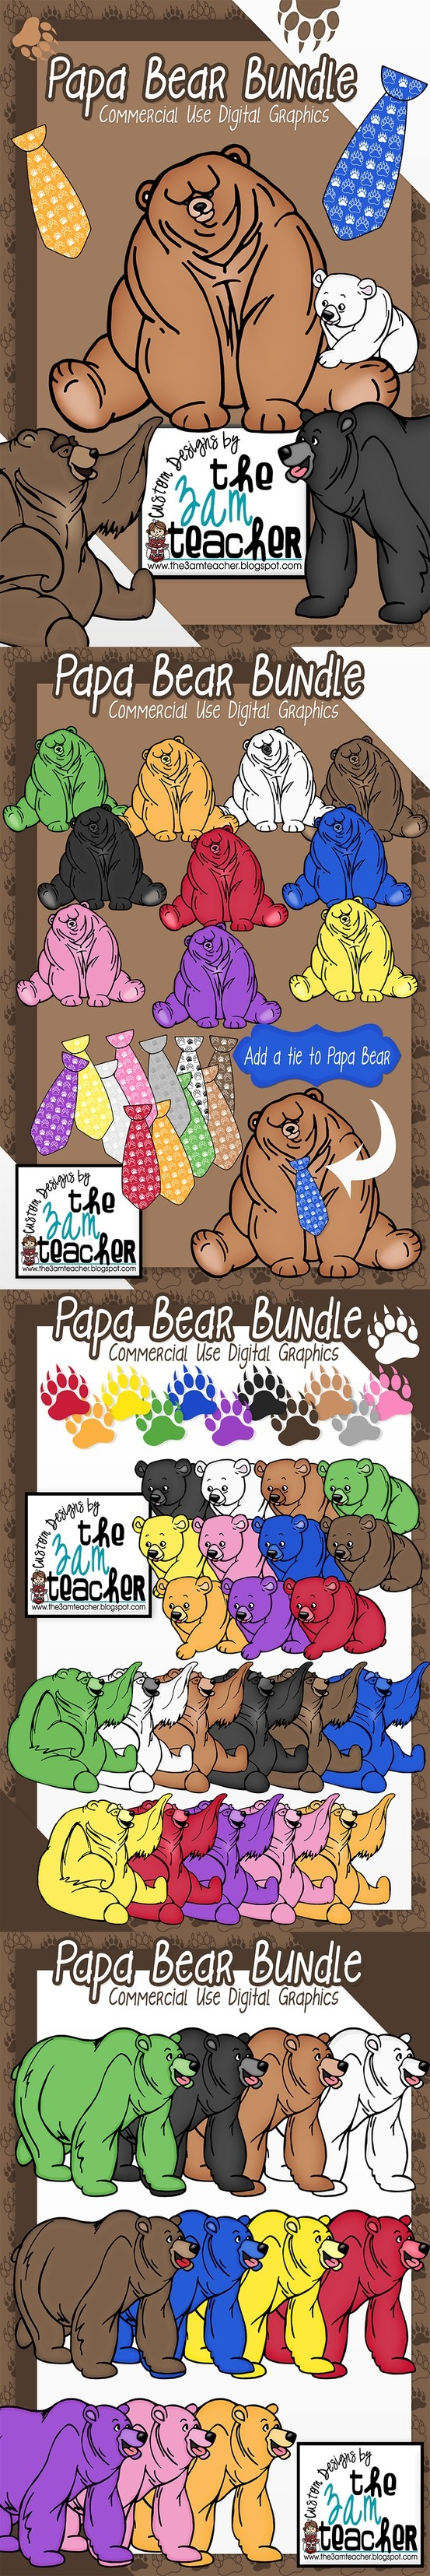 Papa Bear Clip Art Collection by The 3AM Teacher! Great for Father's Day creations. Over 70 images $